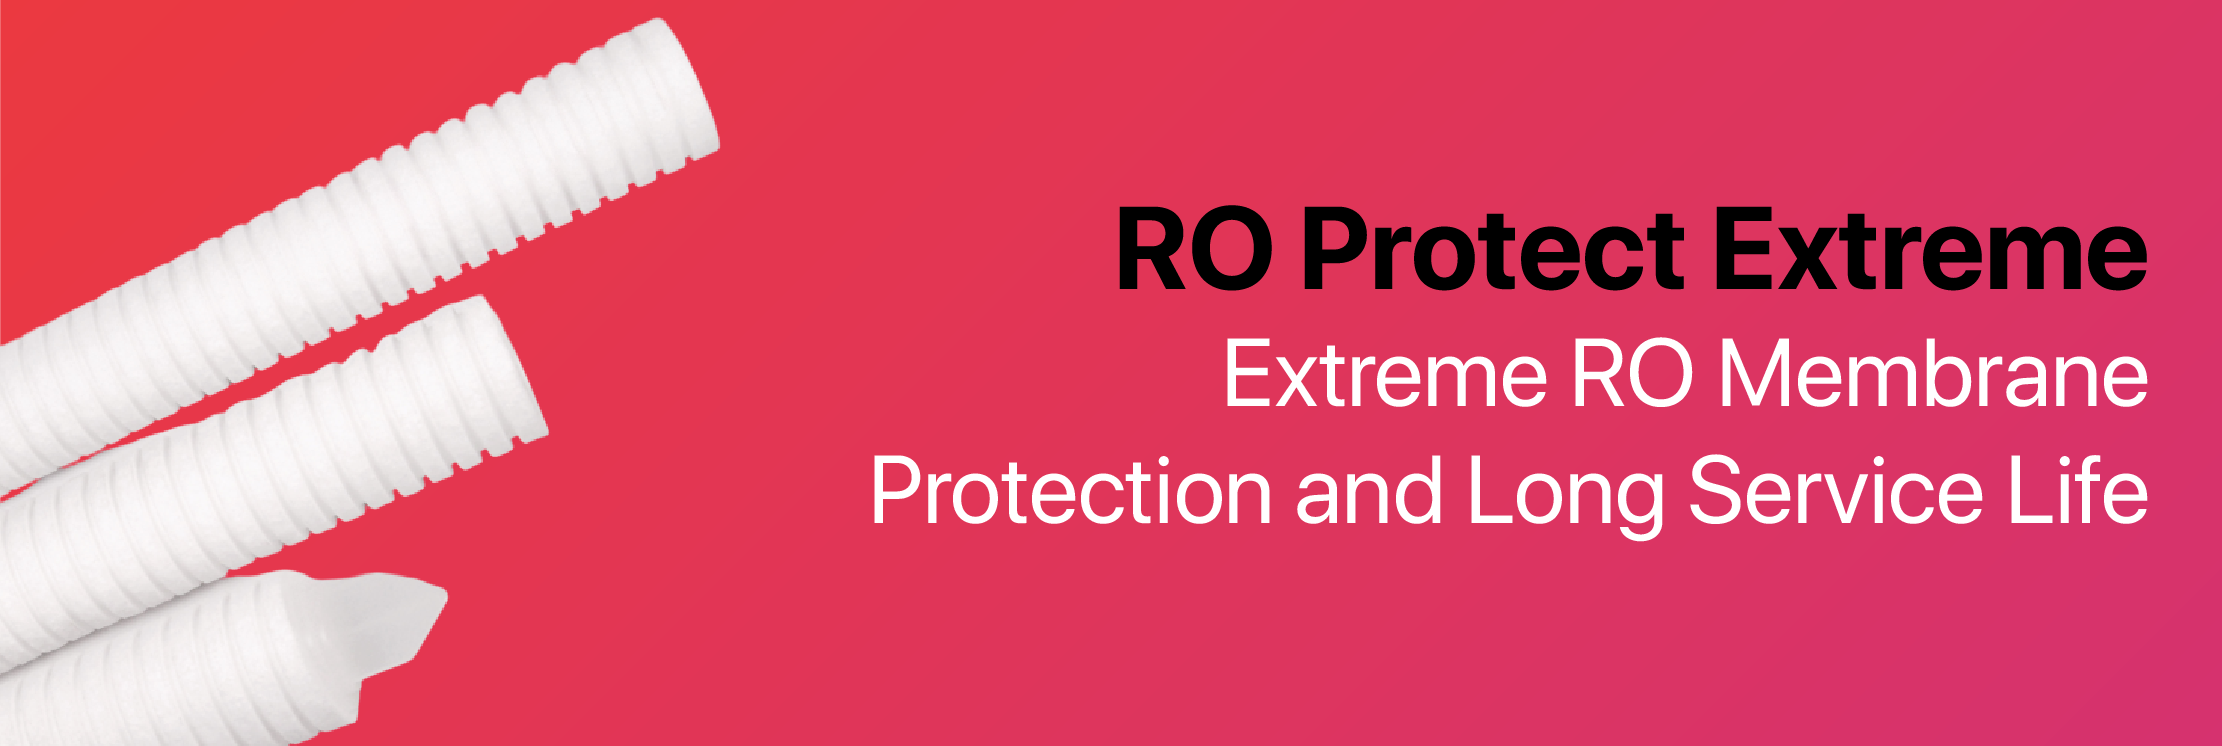 RO Protect Extreme